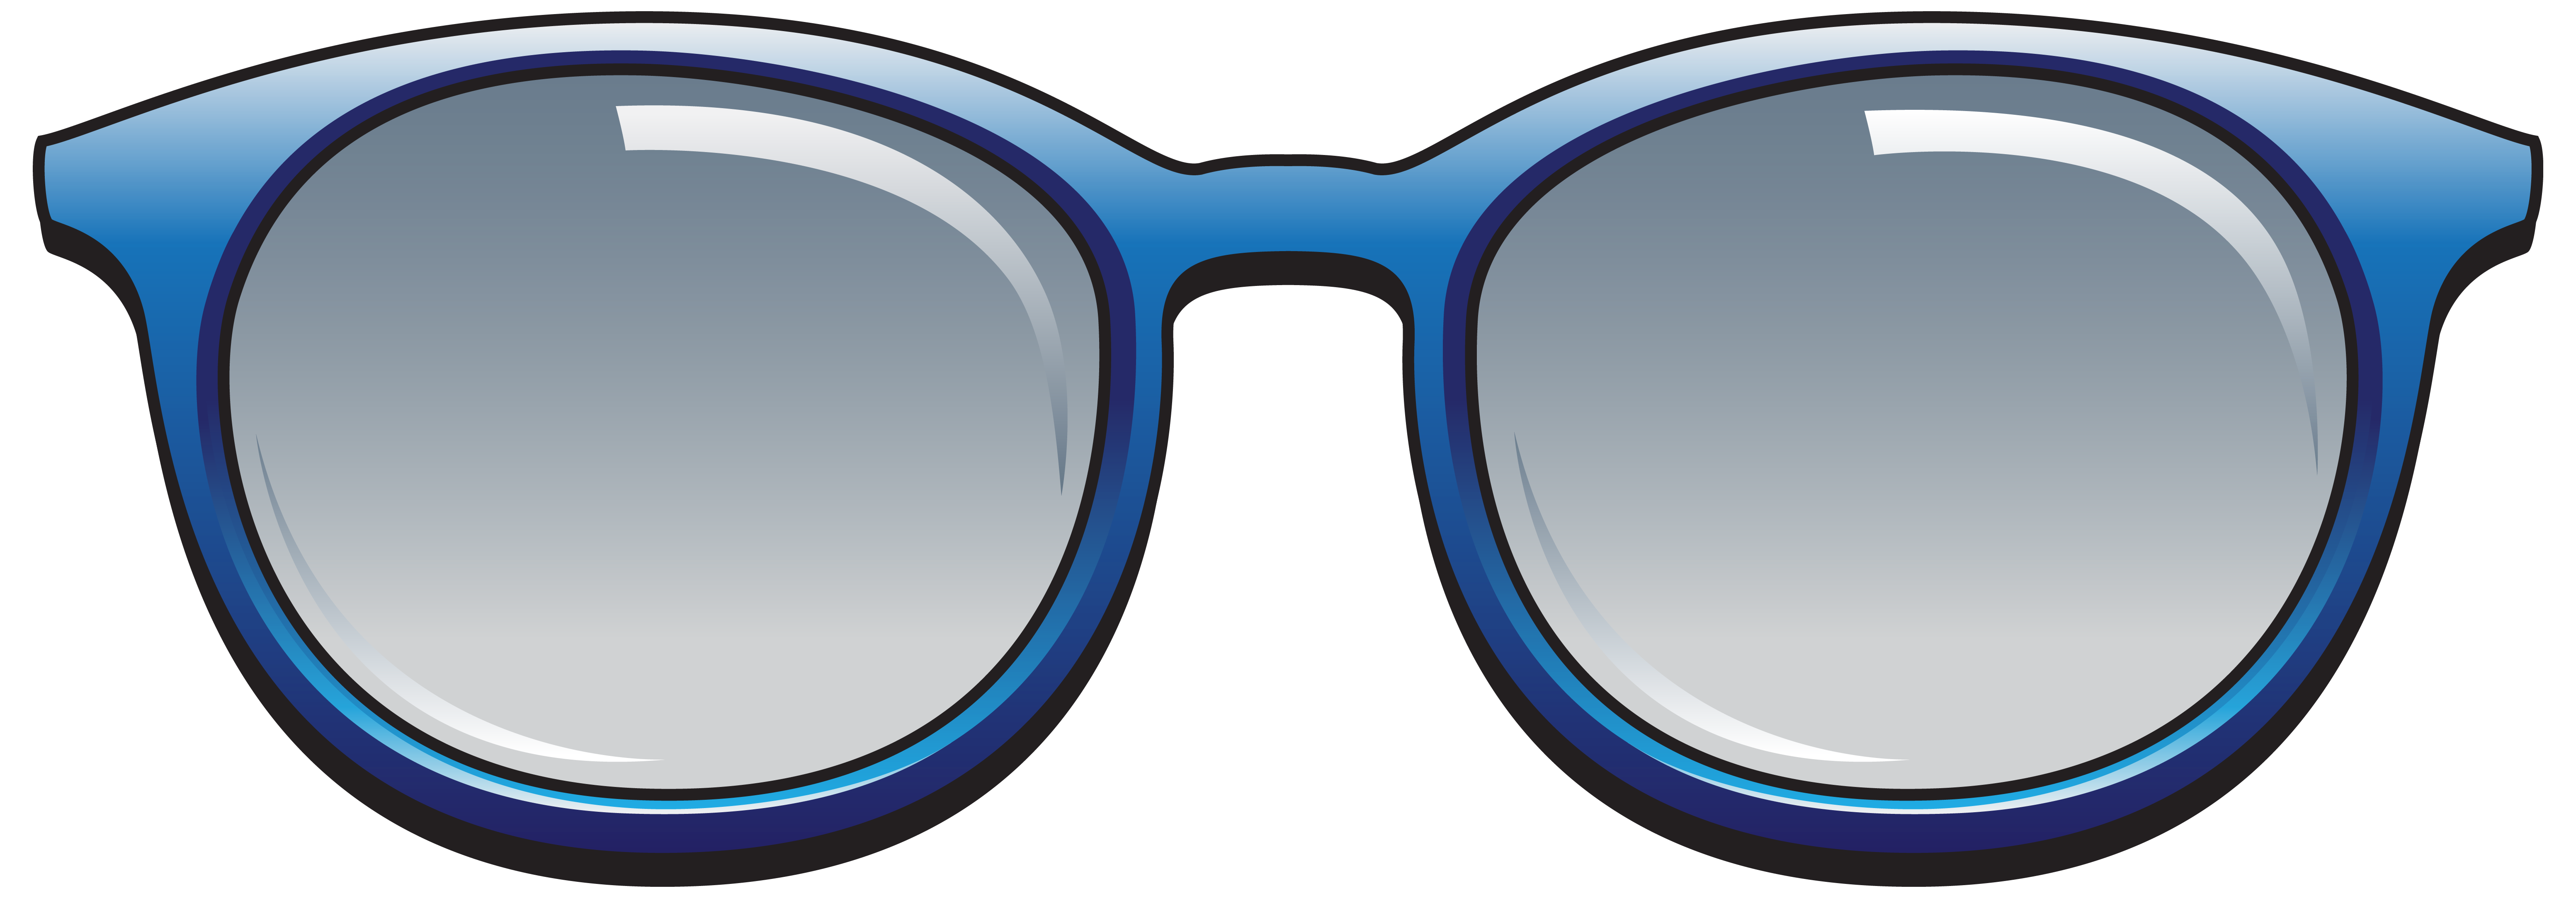 6213x2167 Blue Sunglasses Png Clipart Imageu200b Gallery Yopriceville